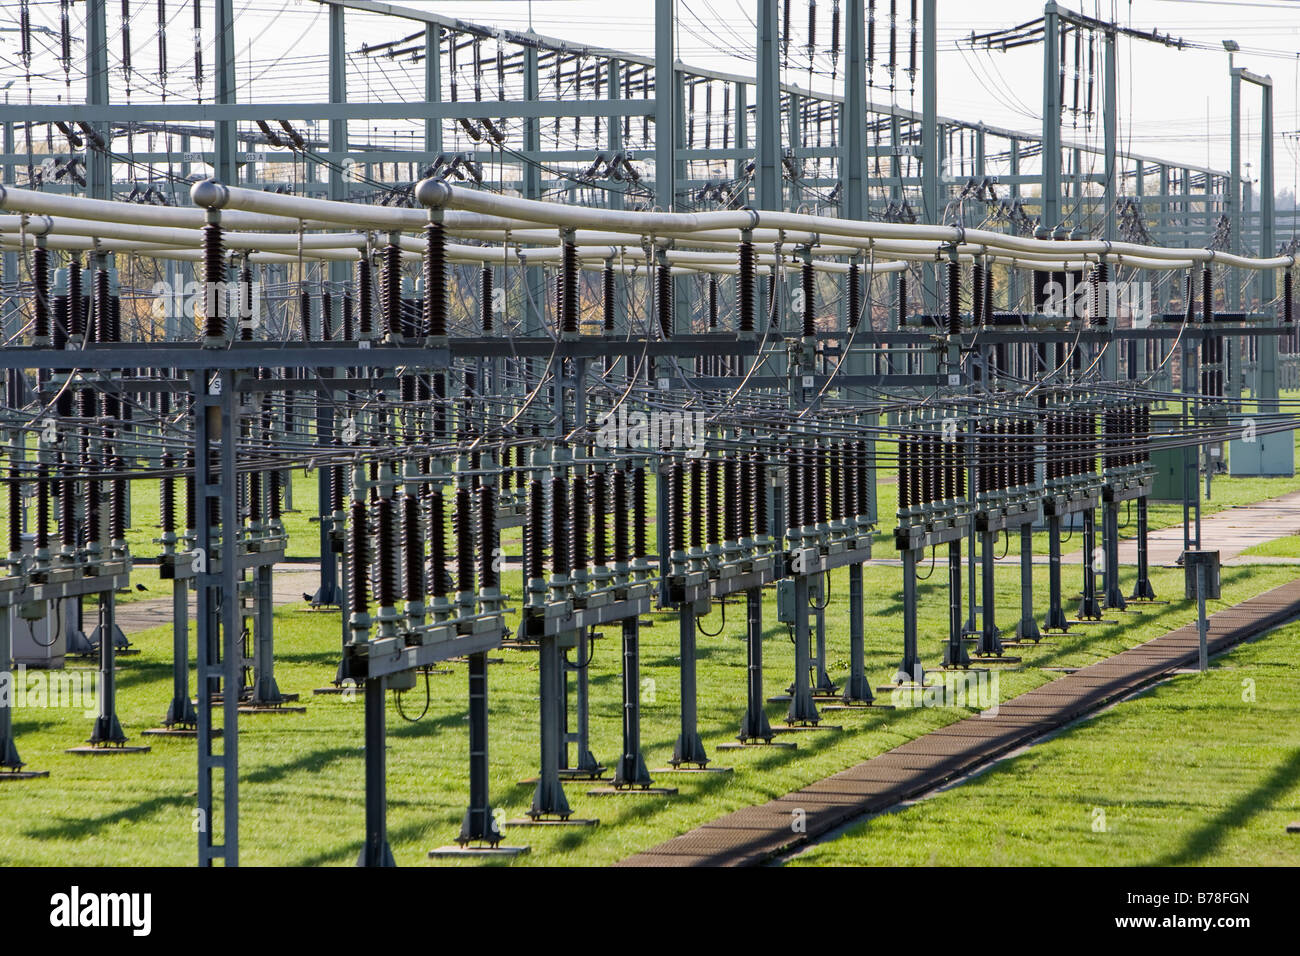 Transformer station, electric utility at steam plant of company Eon, Grosskrotzenburg, Hesse, Germany, Europe Stock Photo